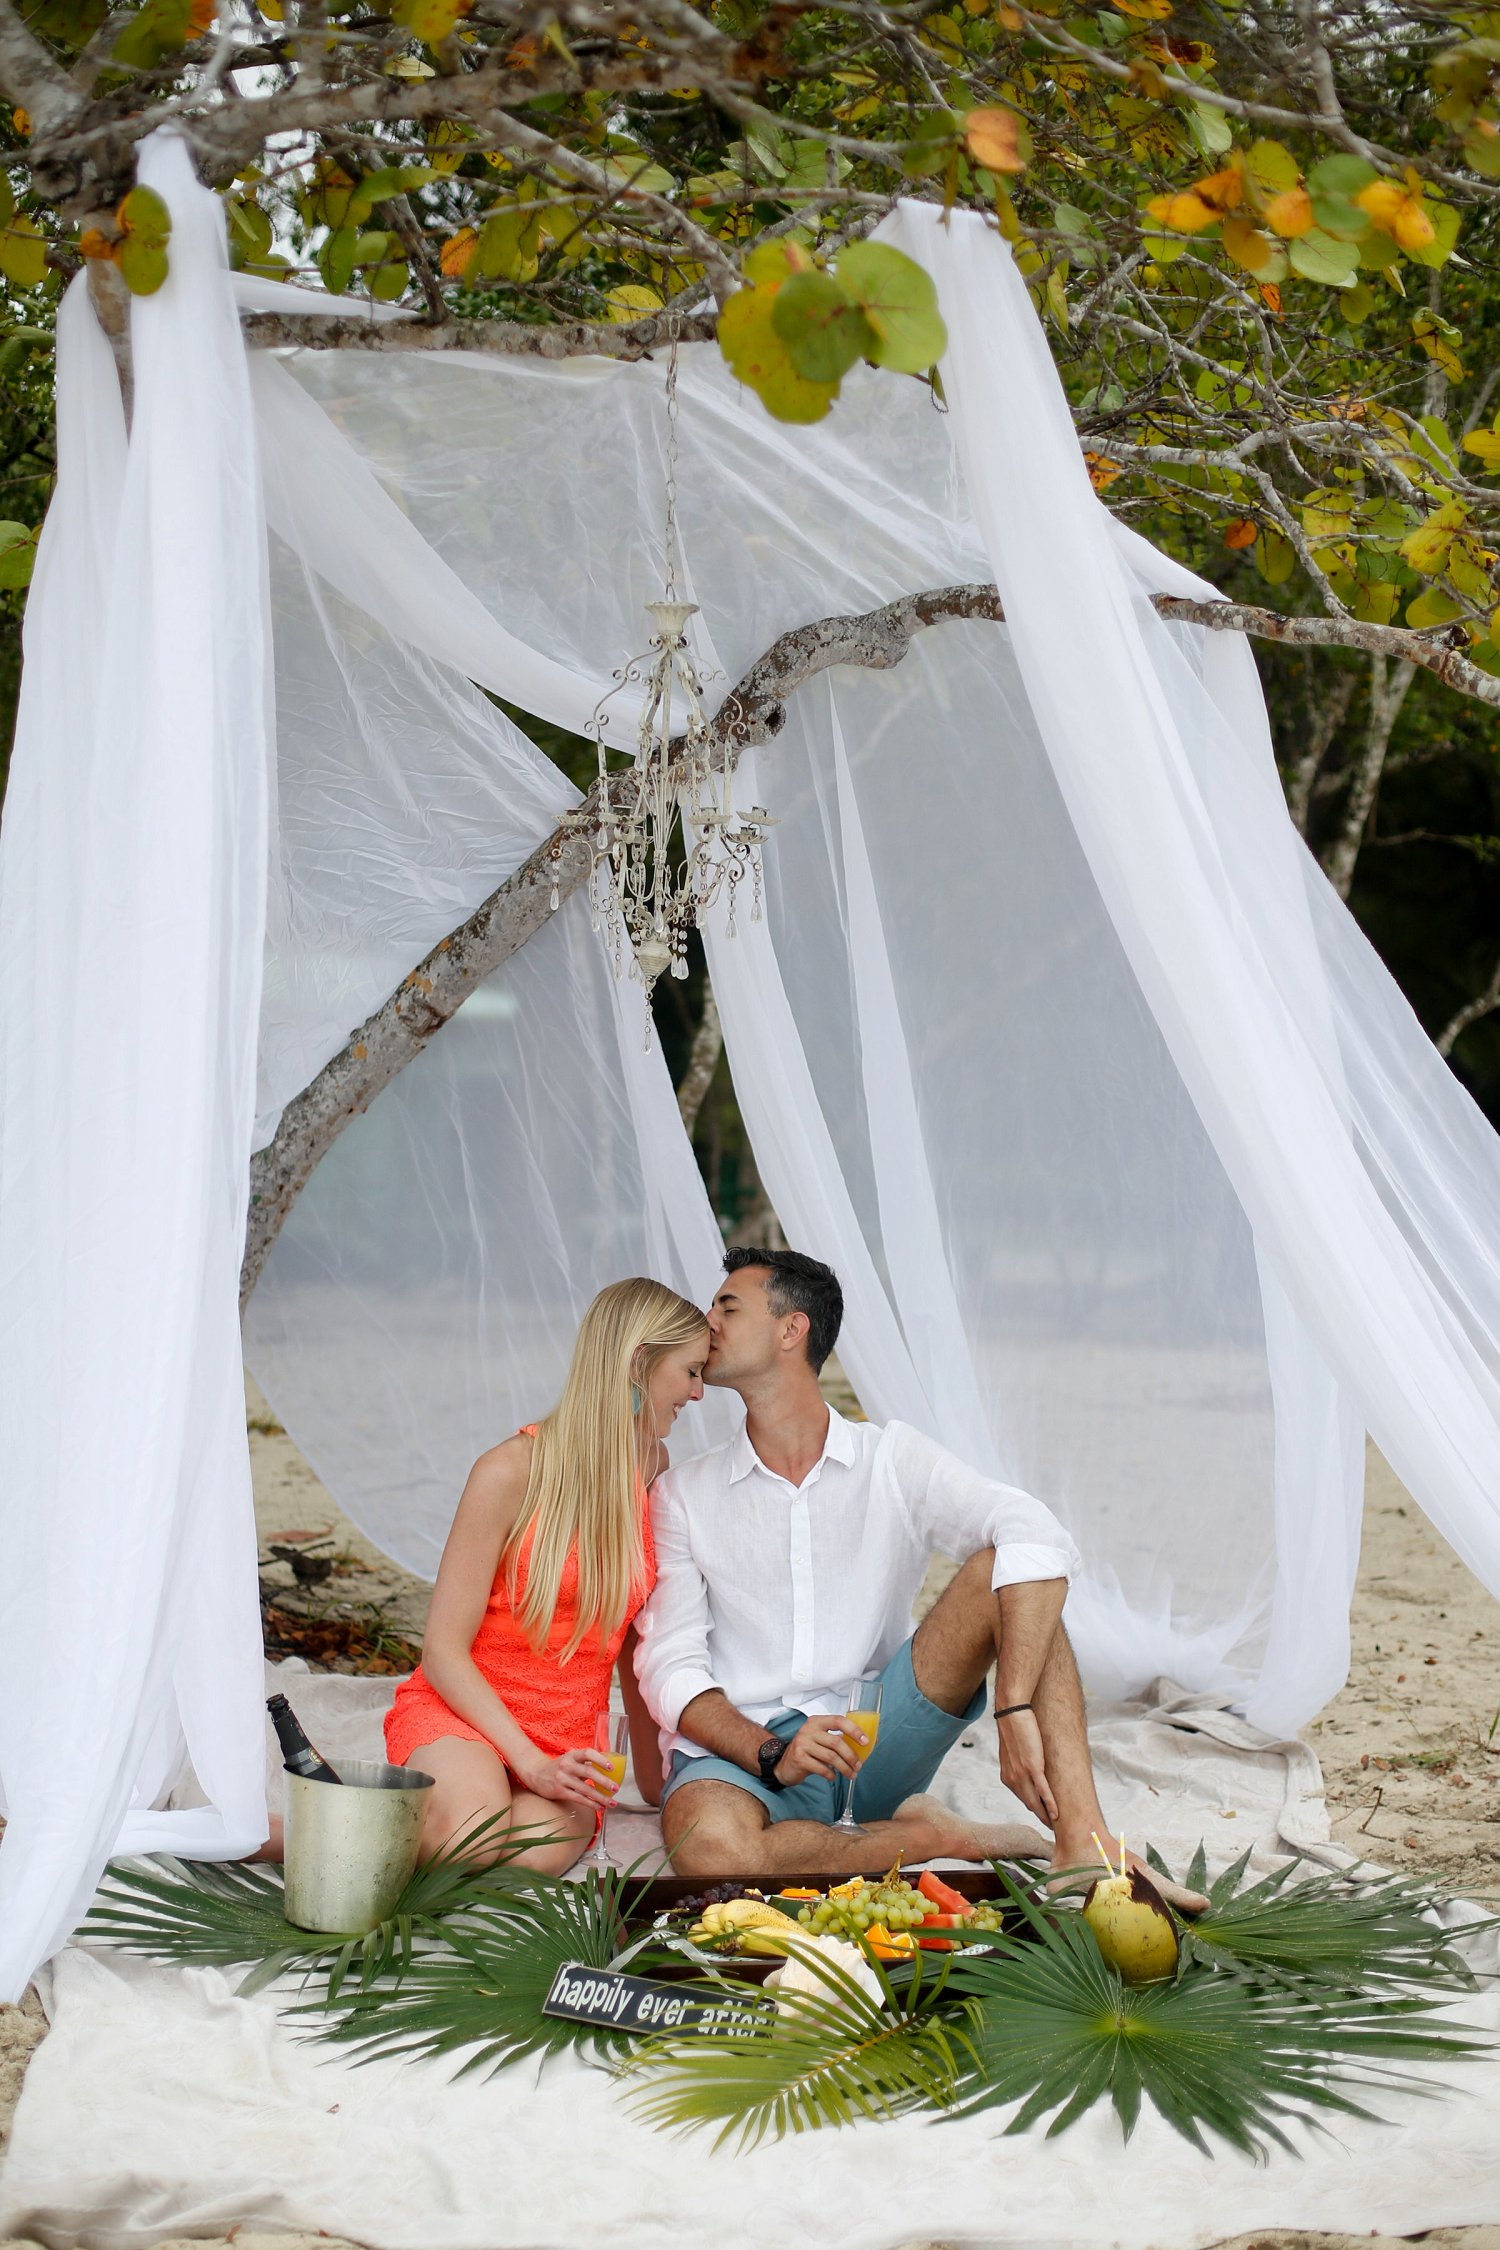 Tropical engagement photo session on the beach.